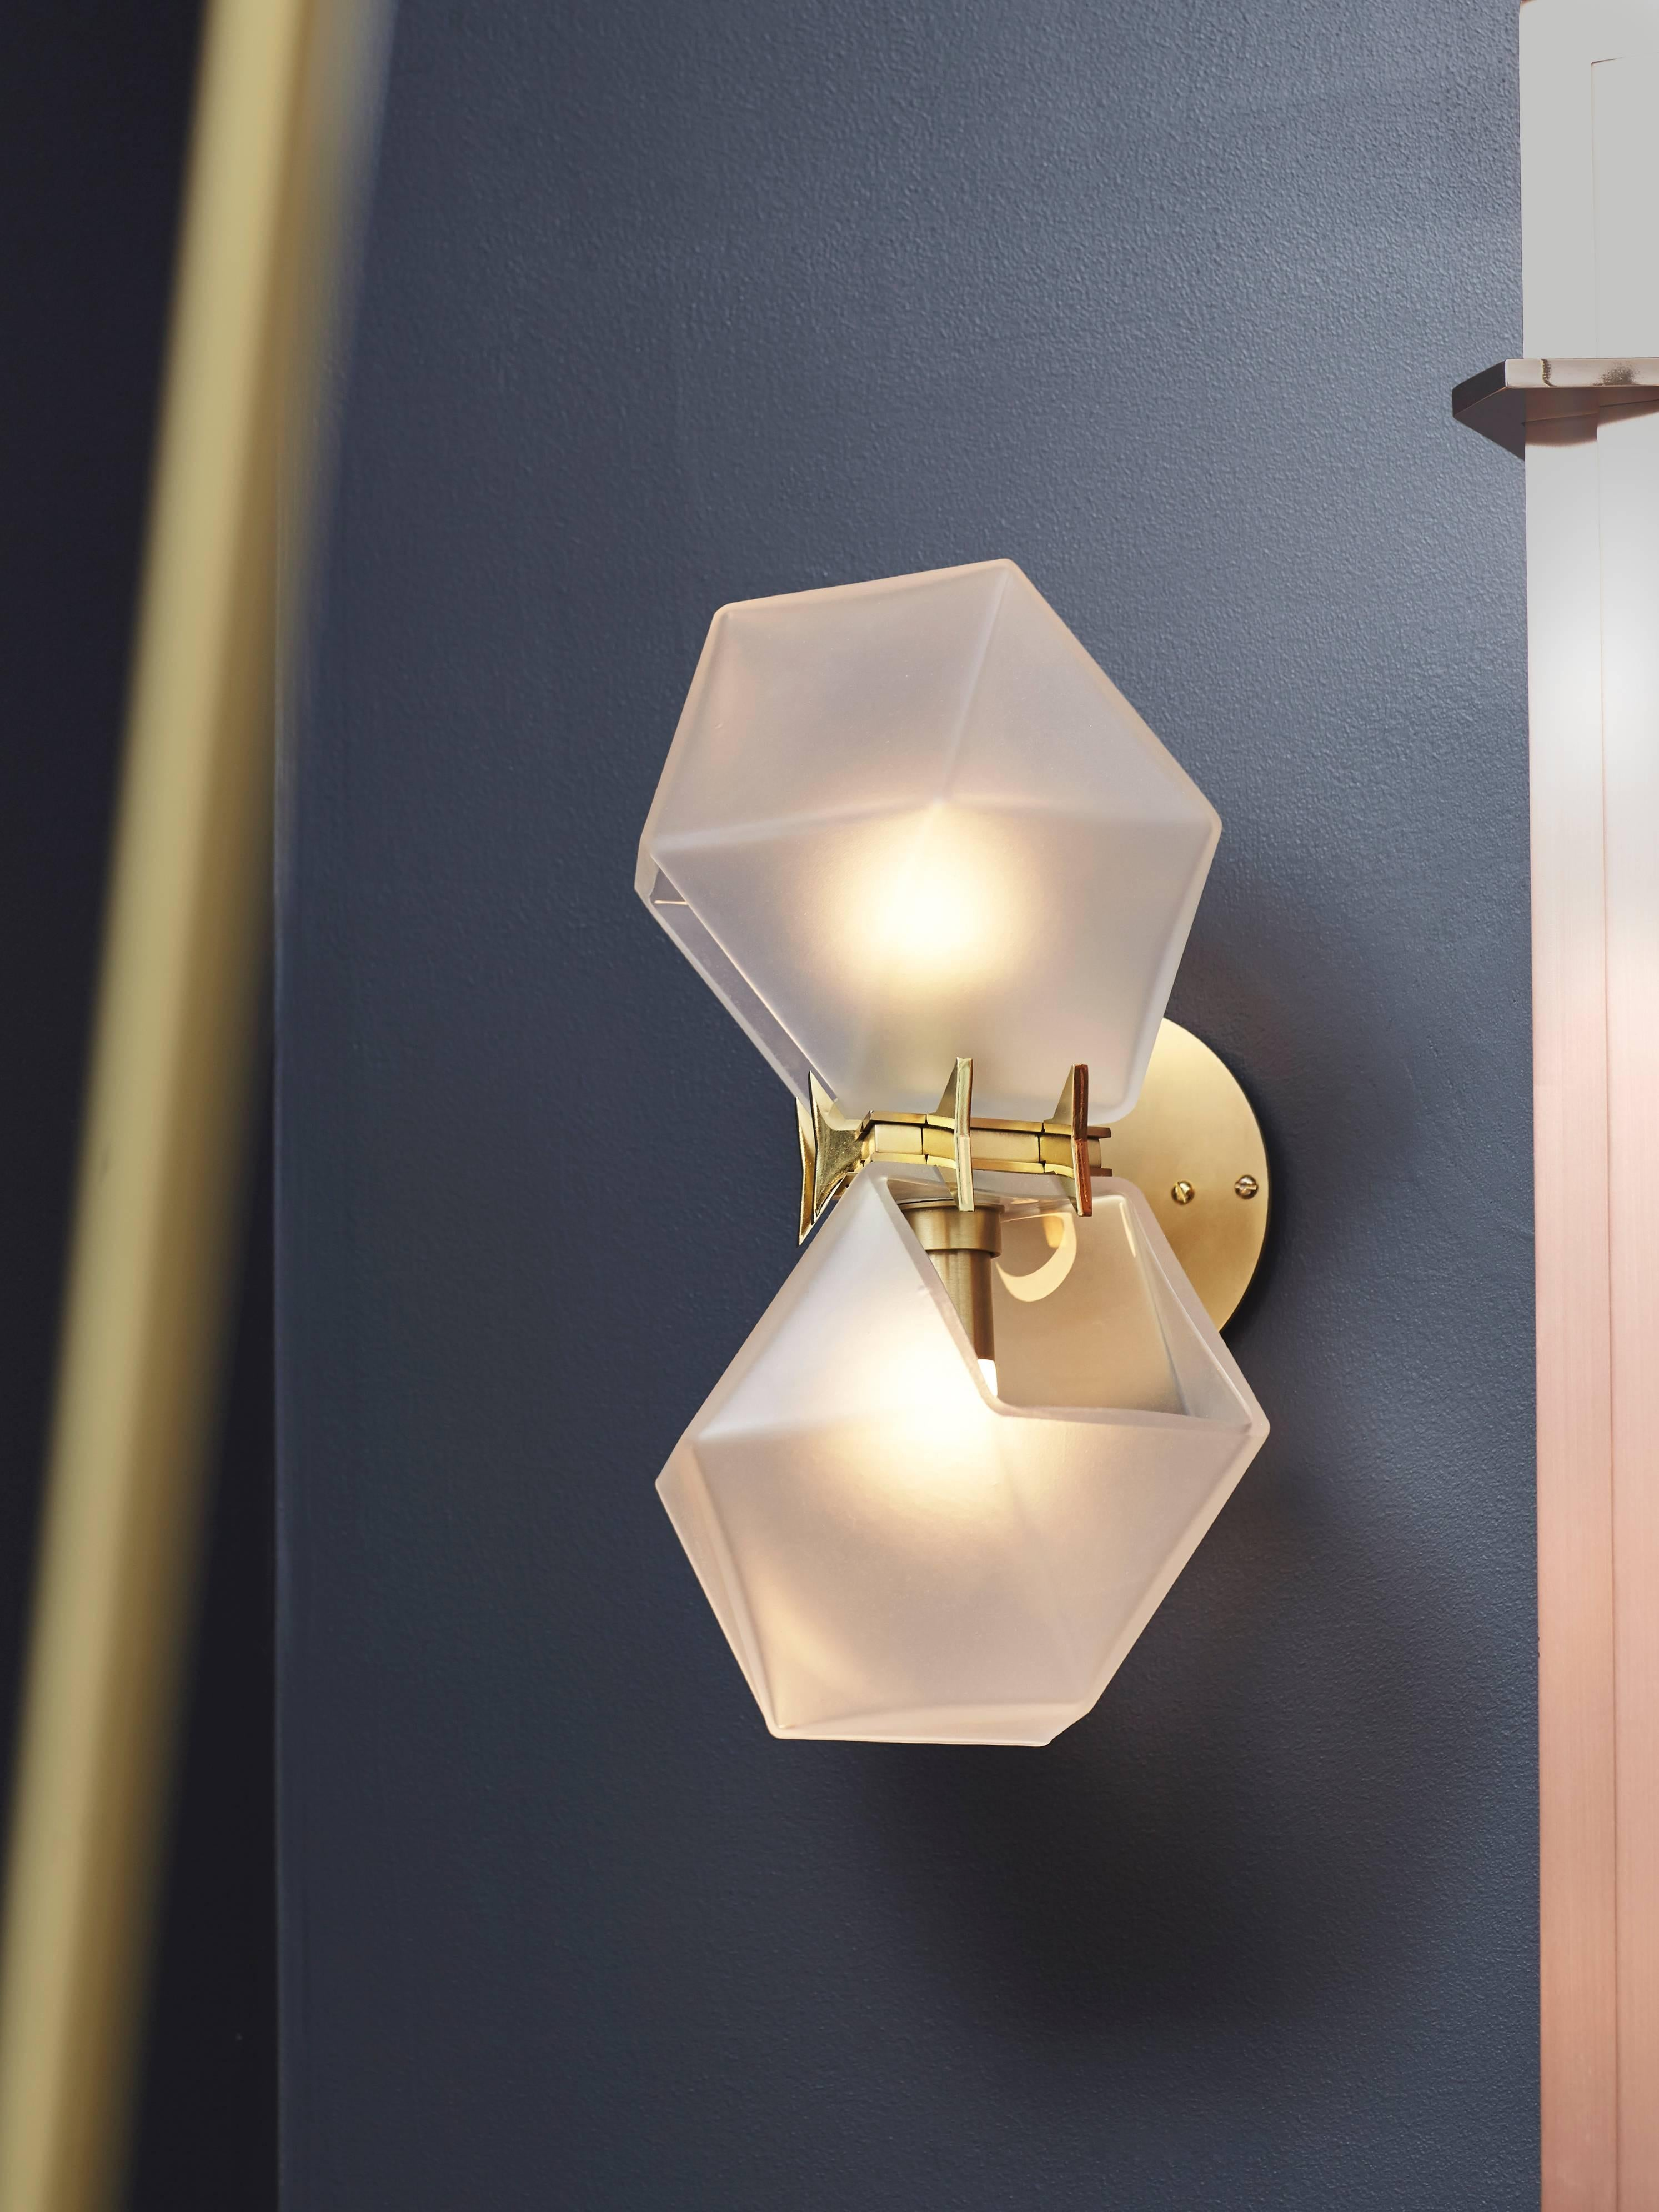 shade sconce brass industrial wall sconces fixture gold metal lighting pin modern